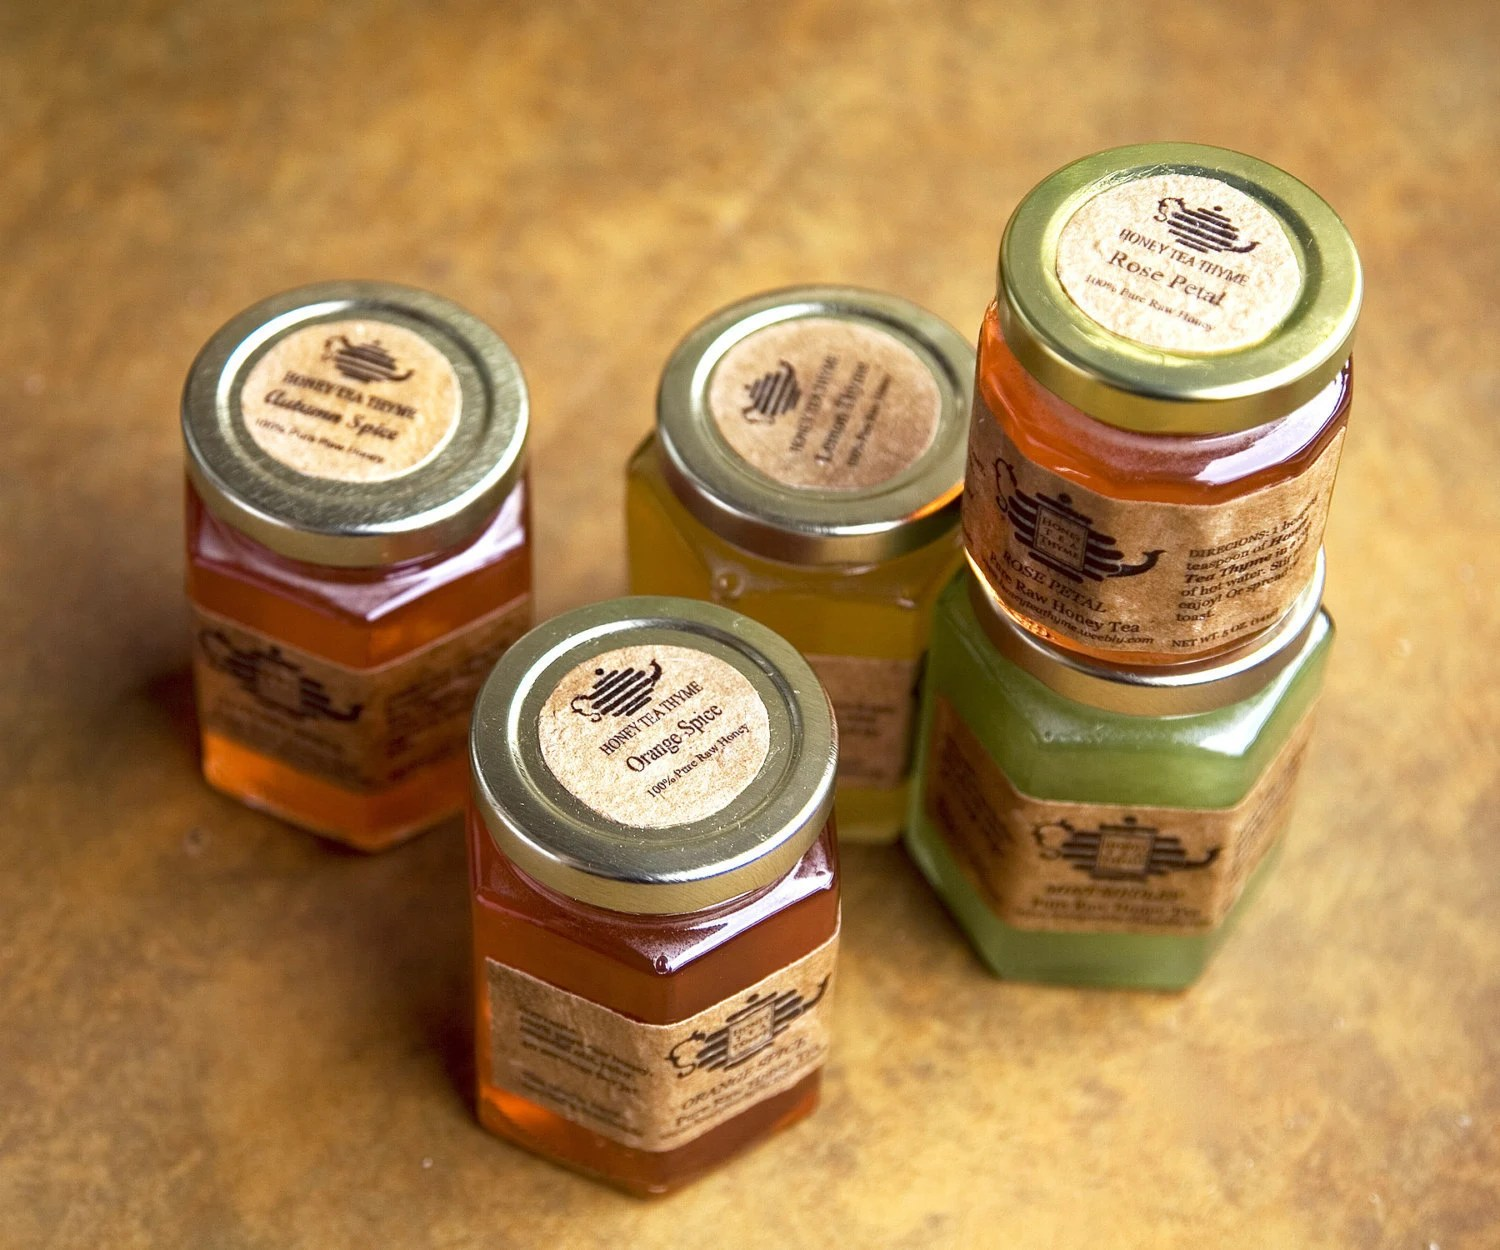 Pure Raw Honey Tea 12, 5 oz Jars Great Gift Idea, Easter or Mothers Day gift